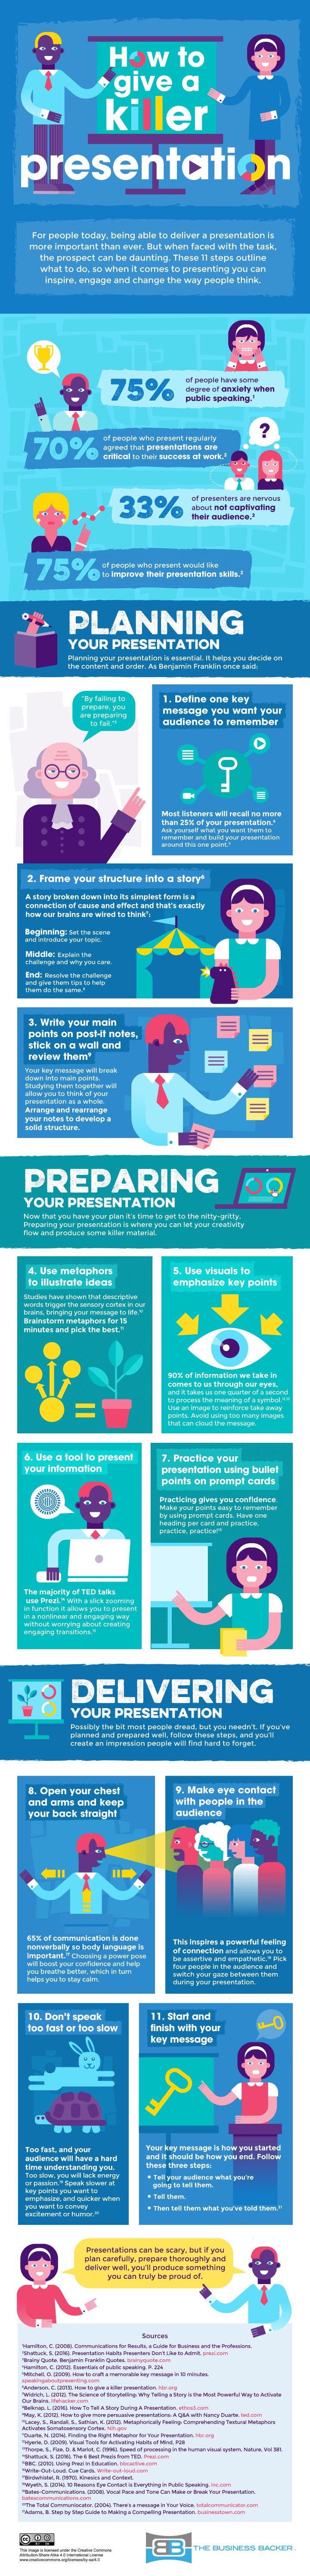 How to Give a Killer Presentation #Infographic #HowTo #Presentation